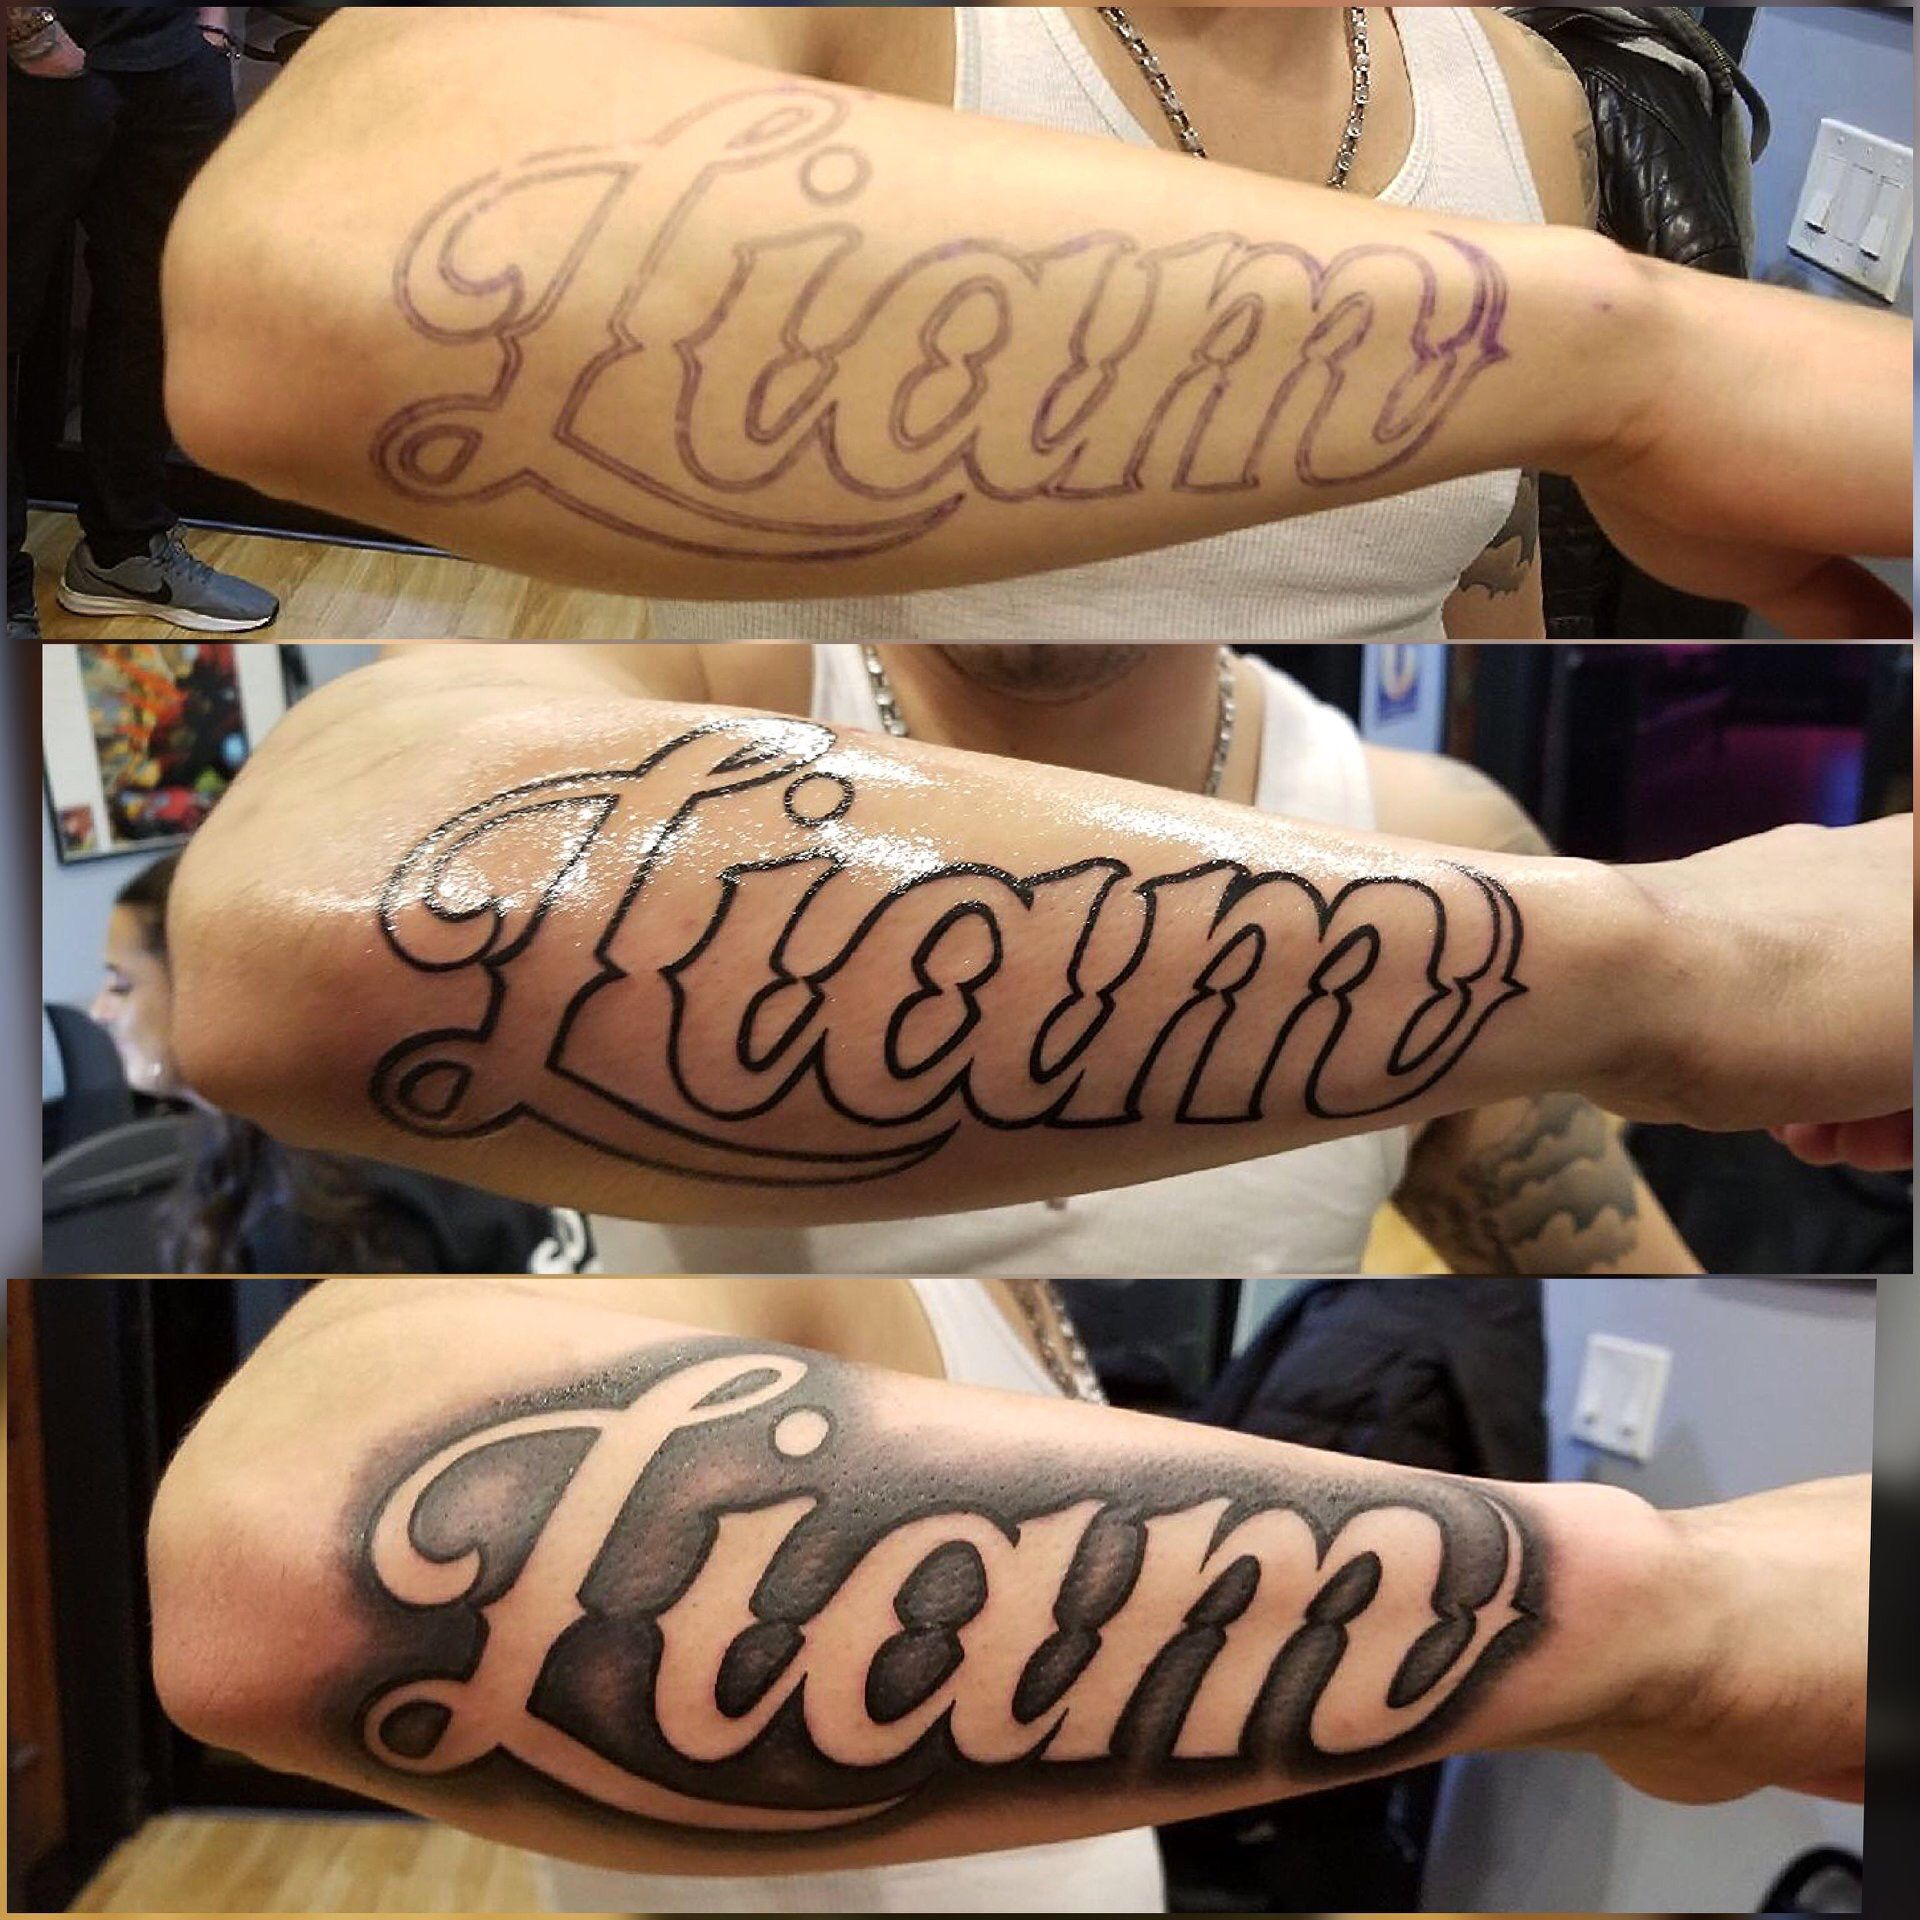 Name Tattoo Name Tattoos Forearm Name Tattoos Tattoo Lettering Styles